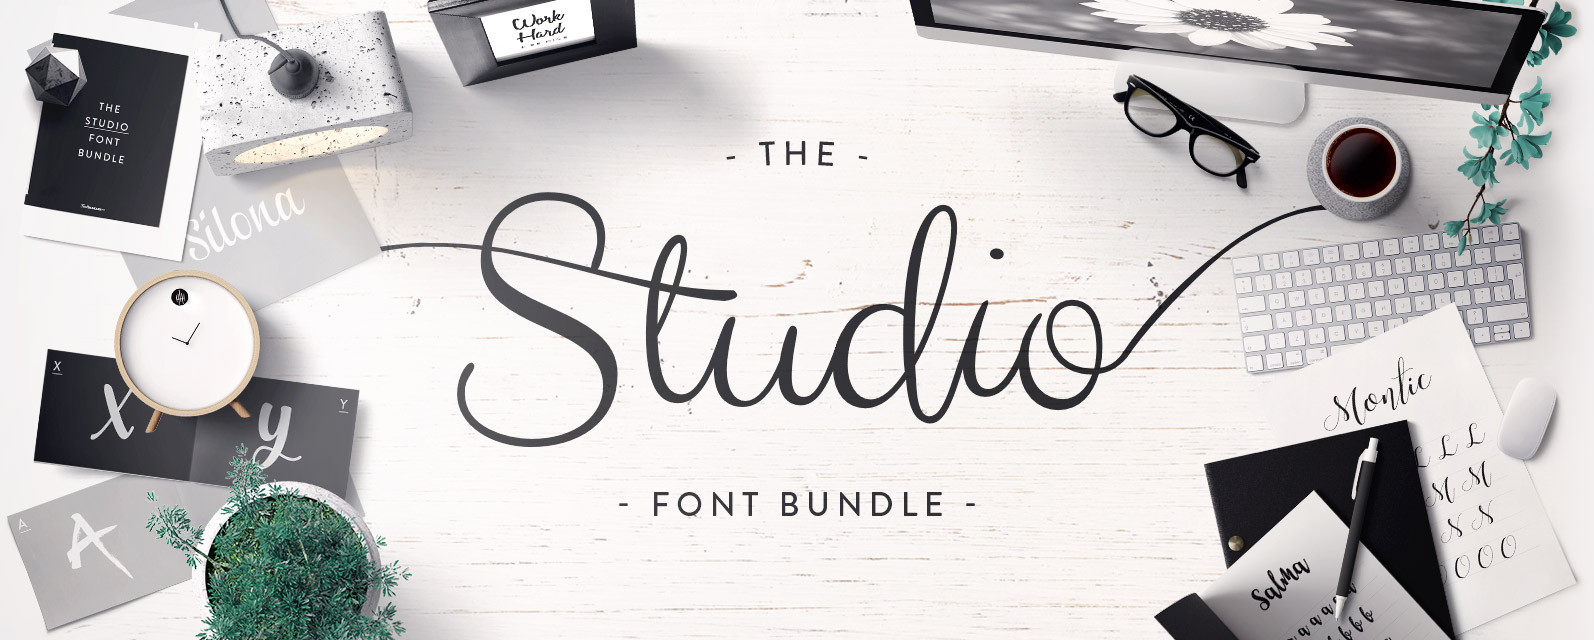 The Studio Font Bundle Cover